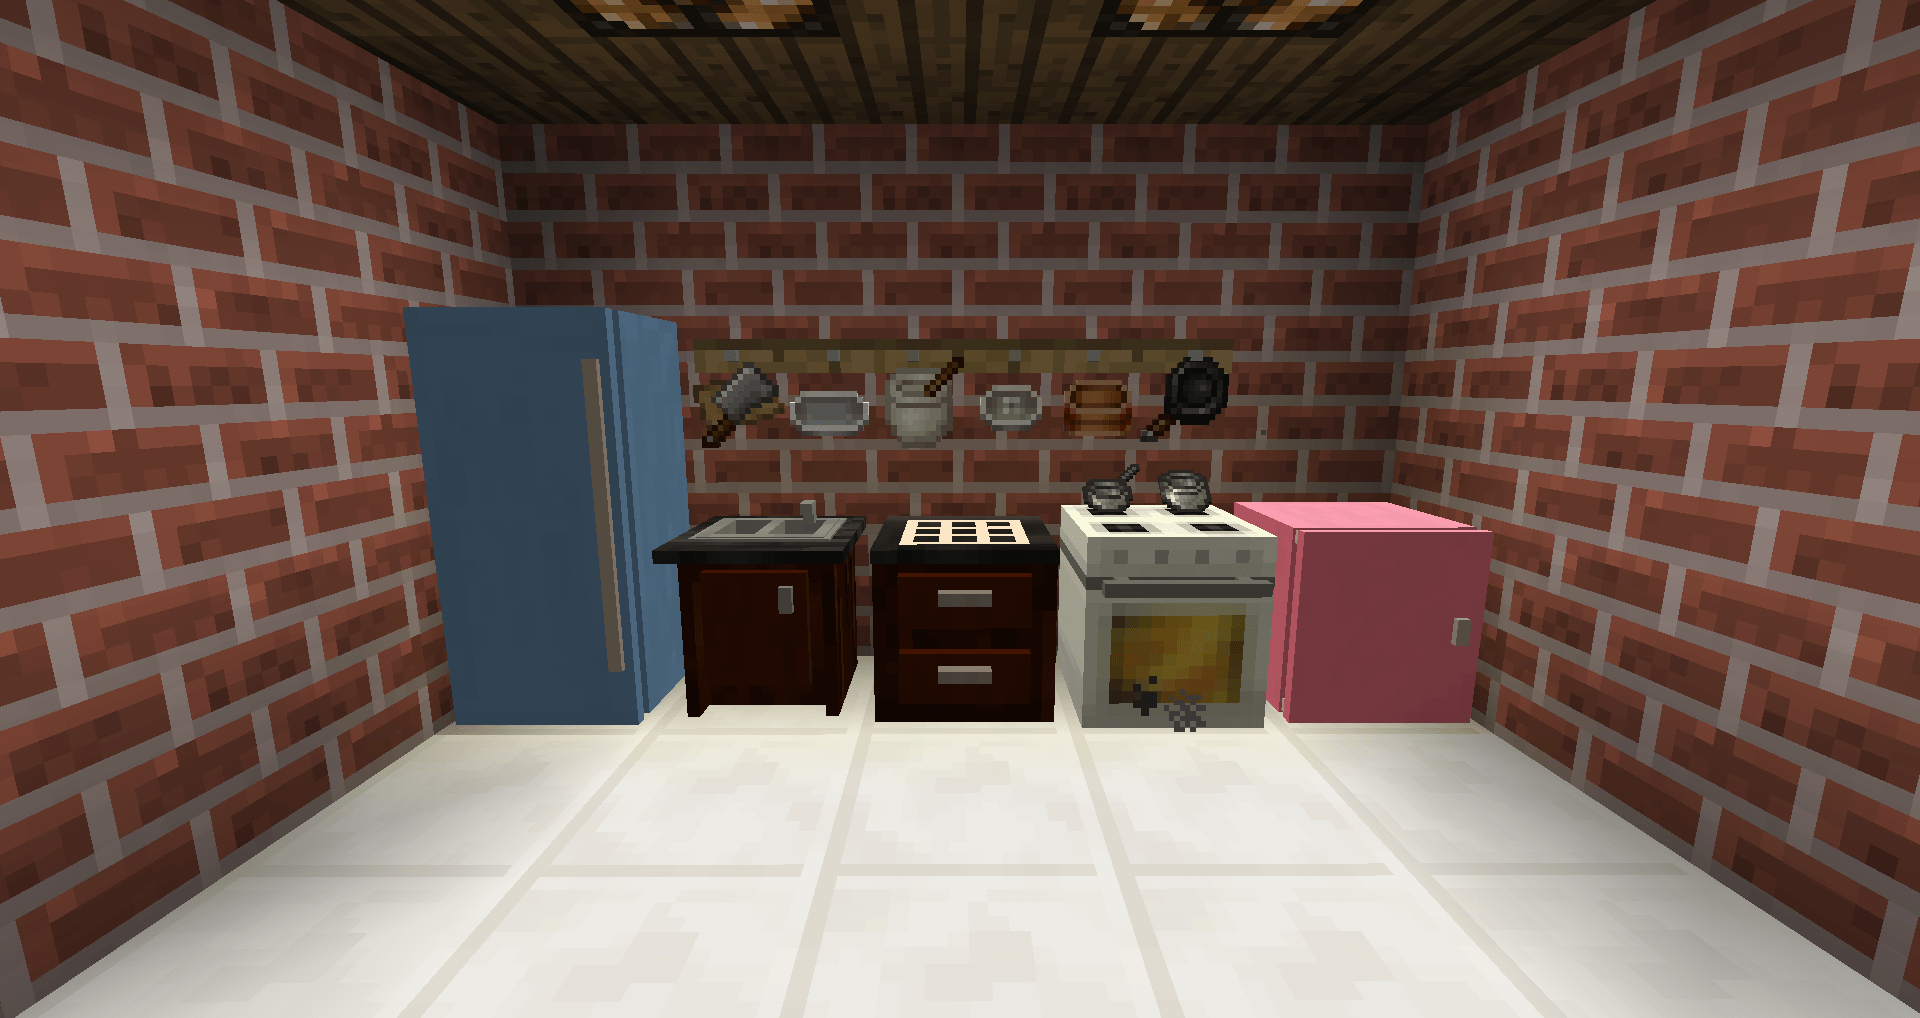 Minecraft Kitchen Mod 1.8 Cooking For Blockheads Mod For Minecraft 1 12 2 1 11 2 Minecraftsix